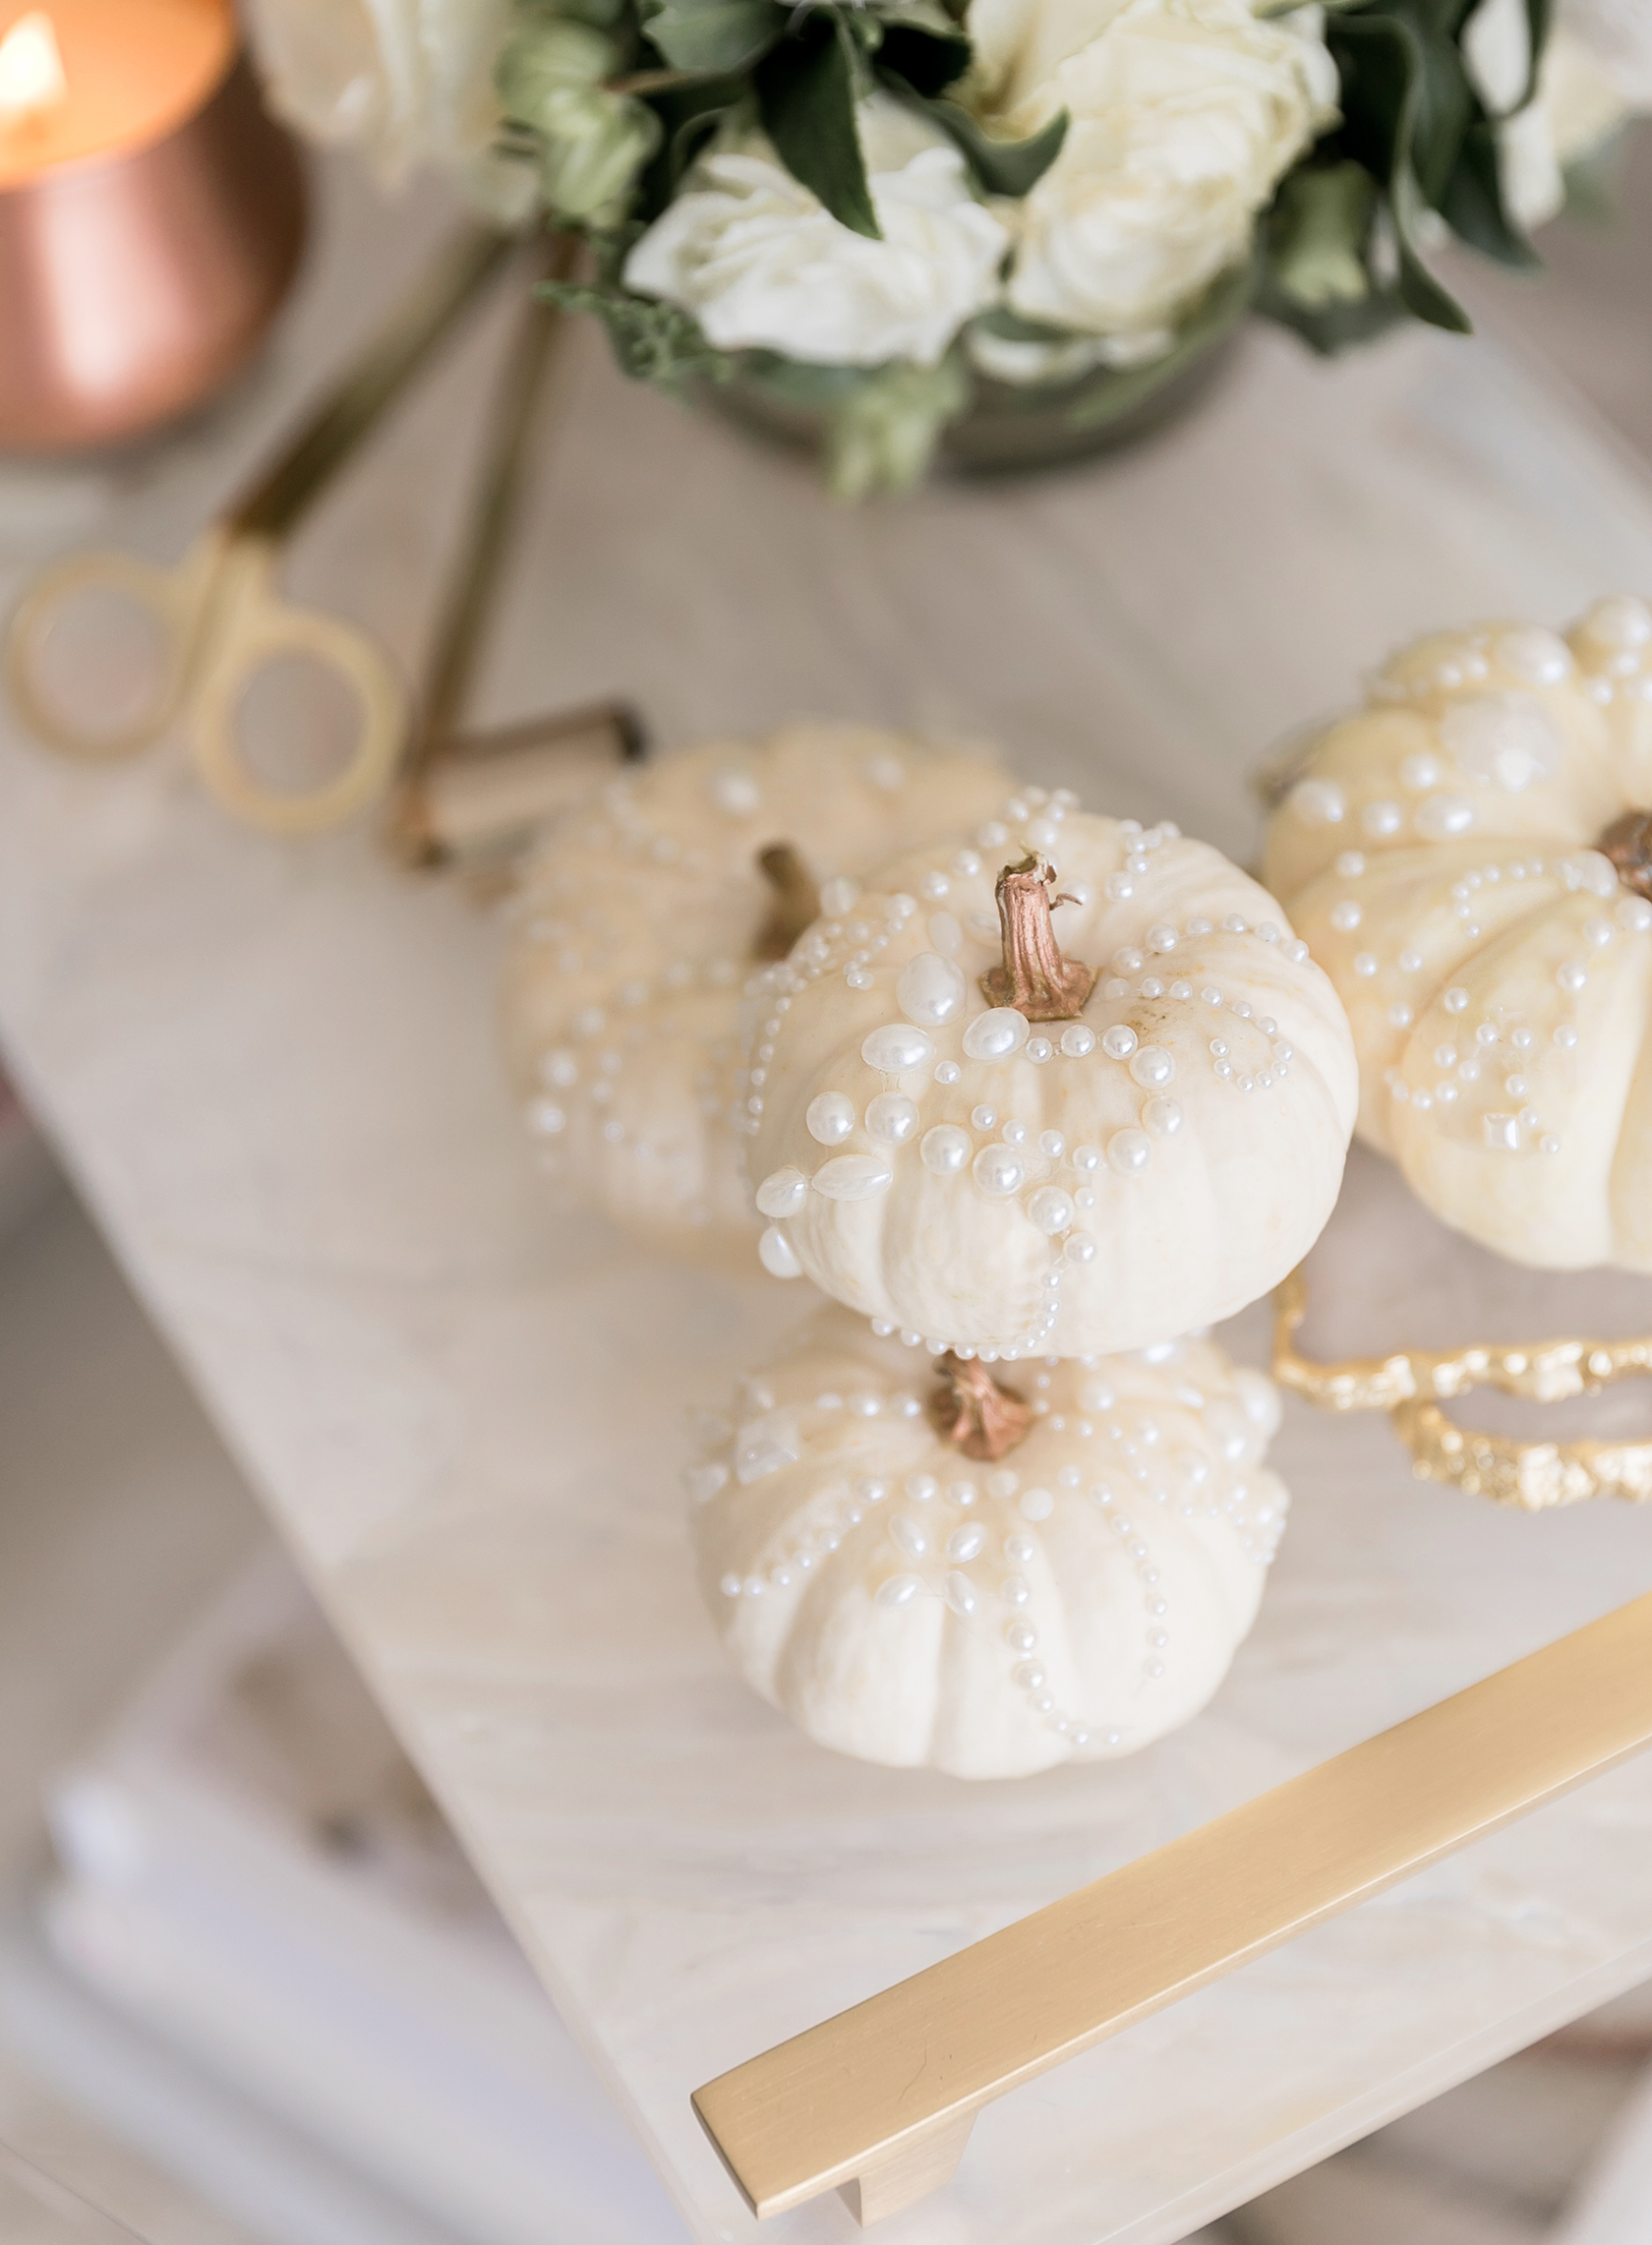 Sydne Style shows fall decor ideas with white pearl pumpkins